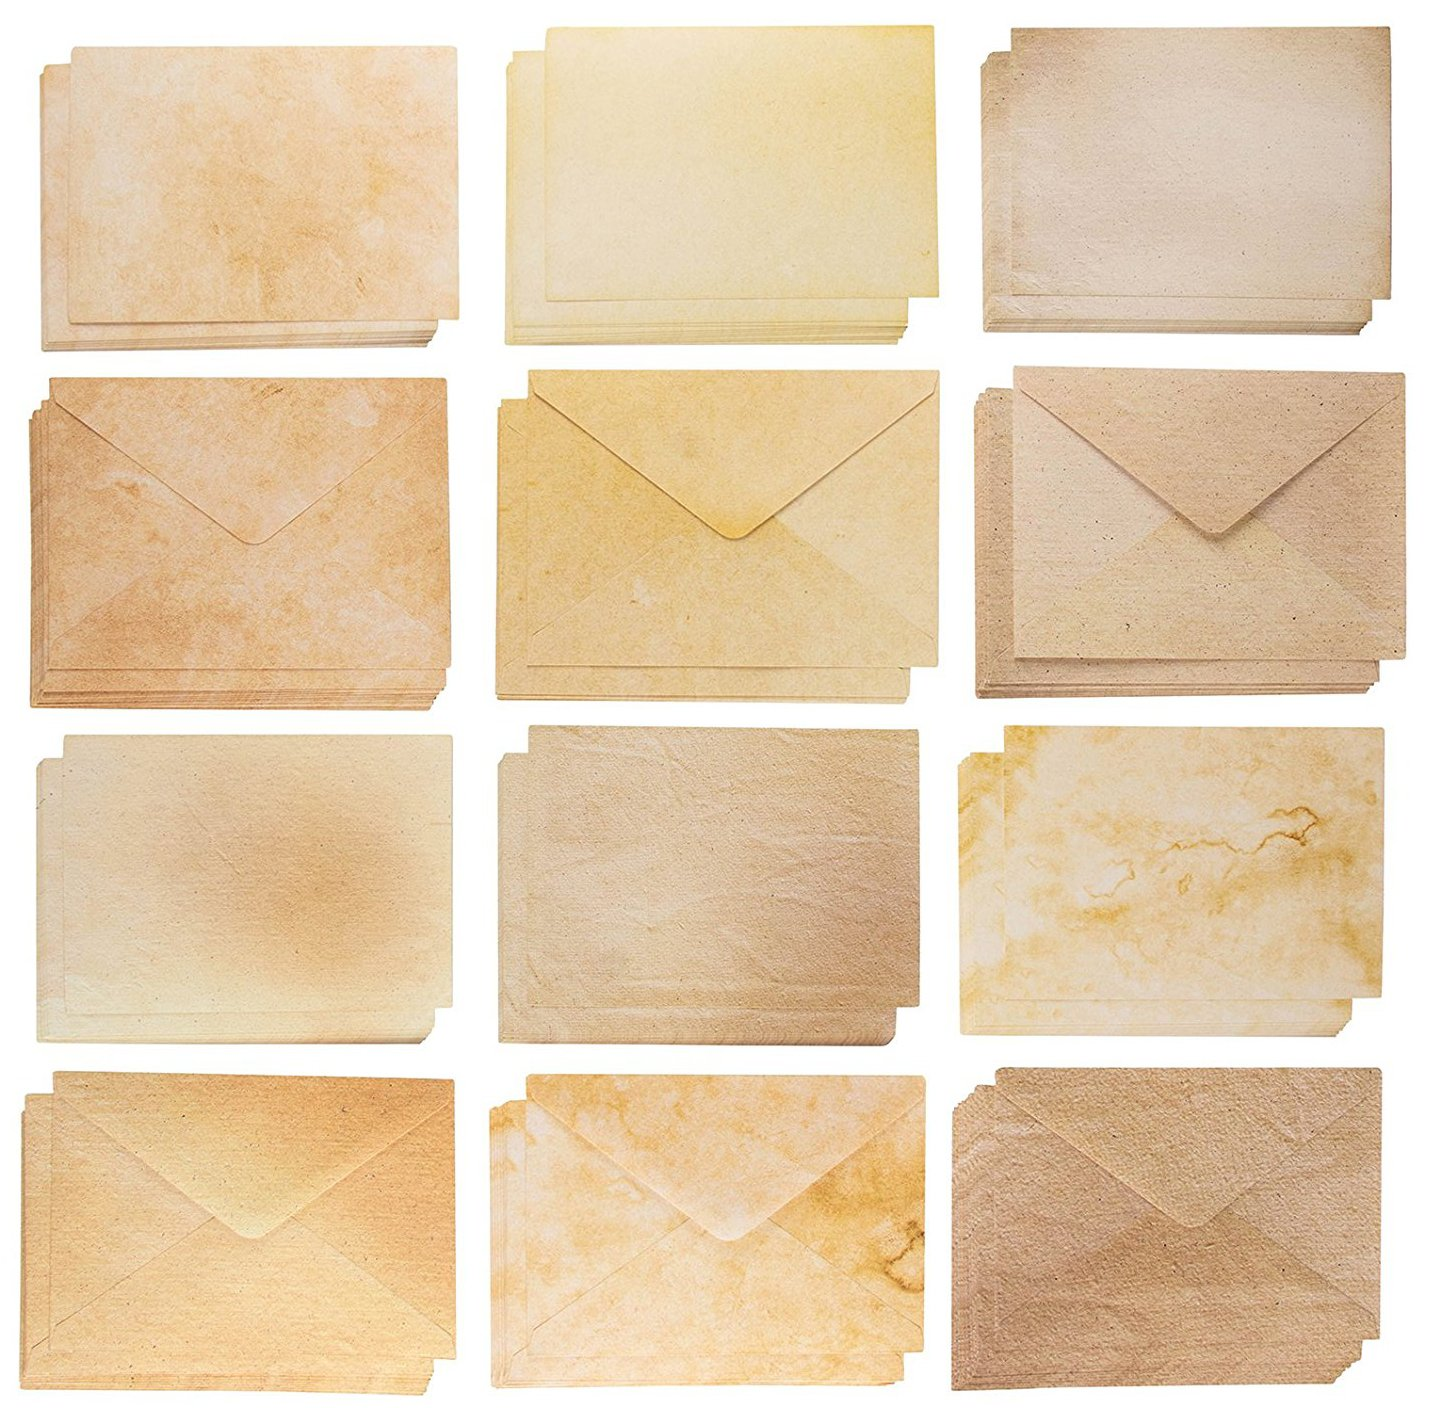 Blank Cards and Envelopes - 60 A7 Envelopes and 60 Blank Cardstock for Printing Invitation Cards, Postcards, Greeting Cards, Aged Style Vintage Designs, 5 x 7 Inches by Best Paper Greetings